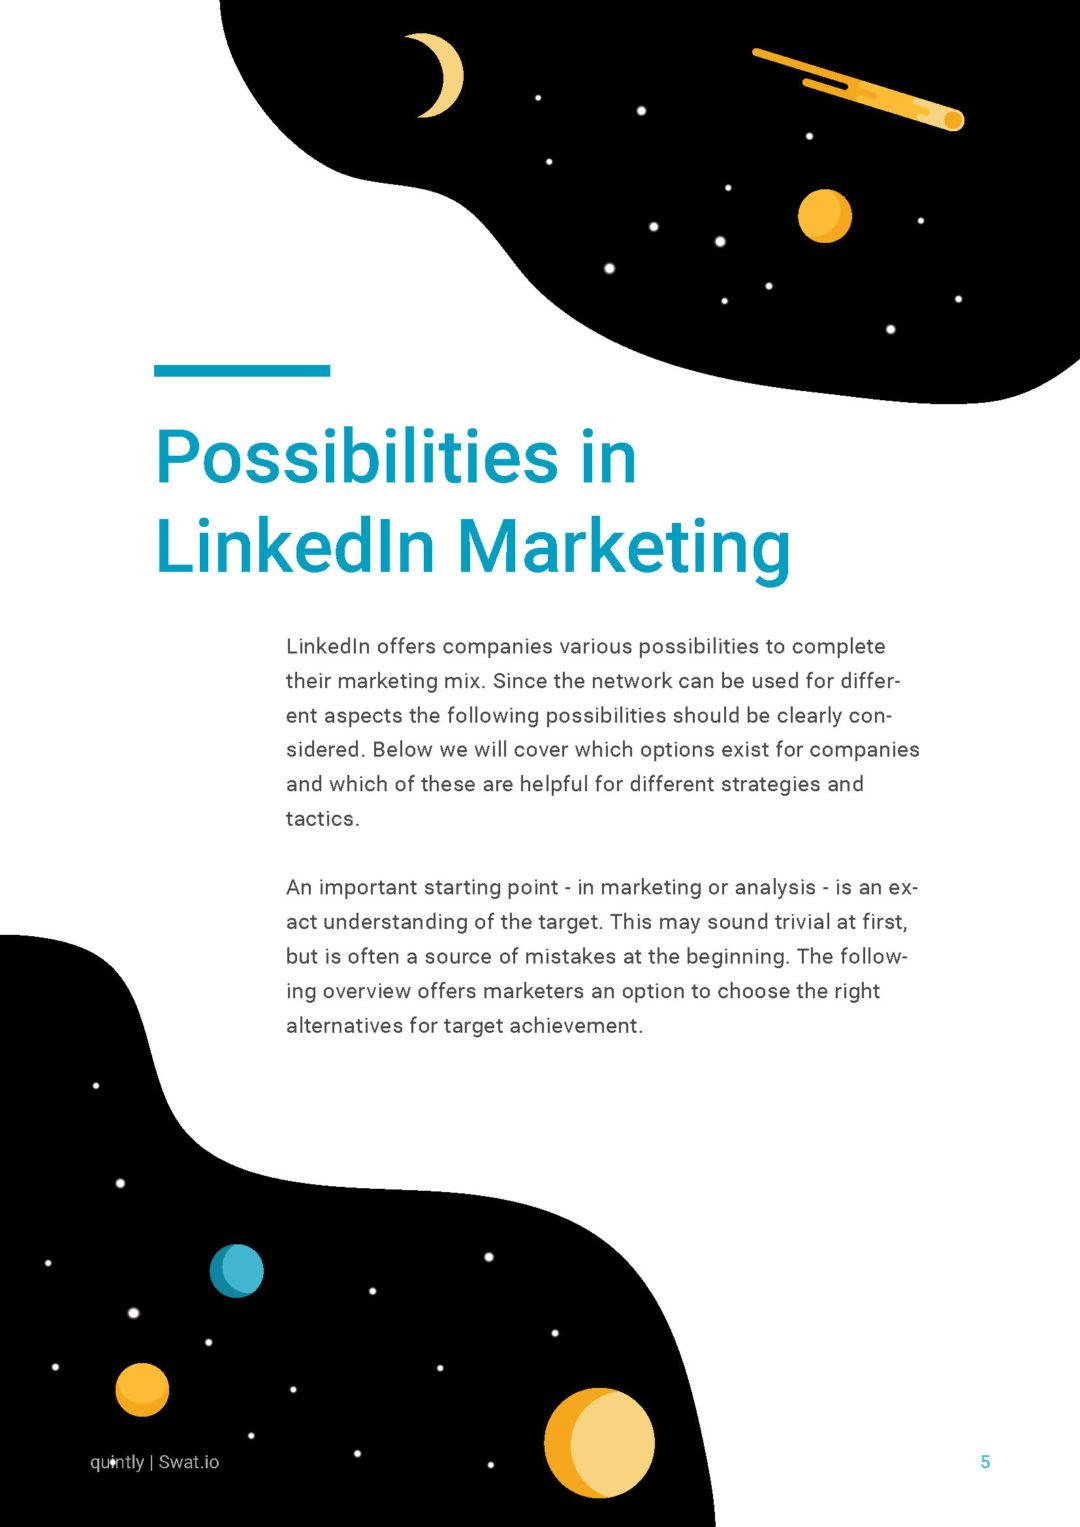 B2B Marketing im LinkedIn Universum 2